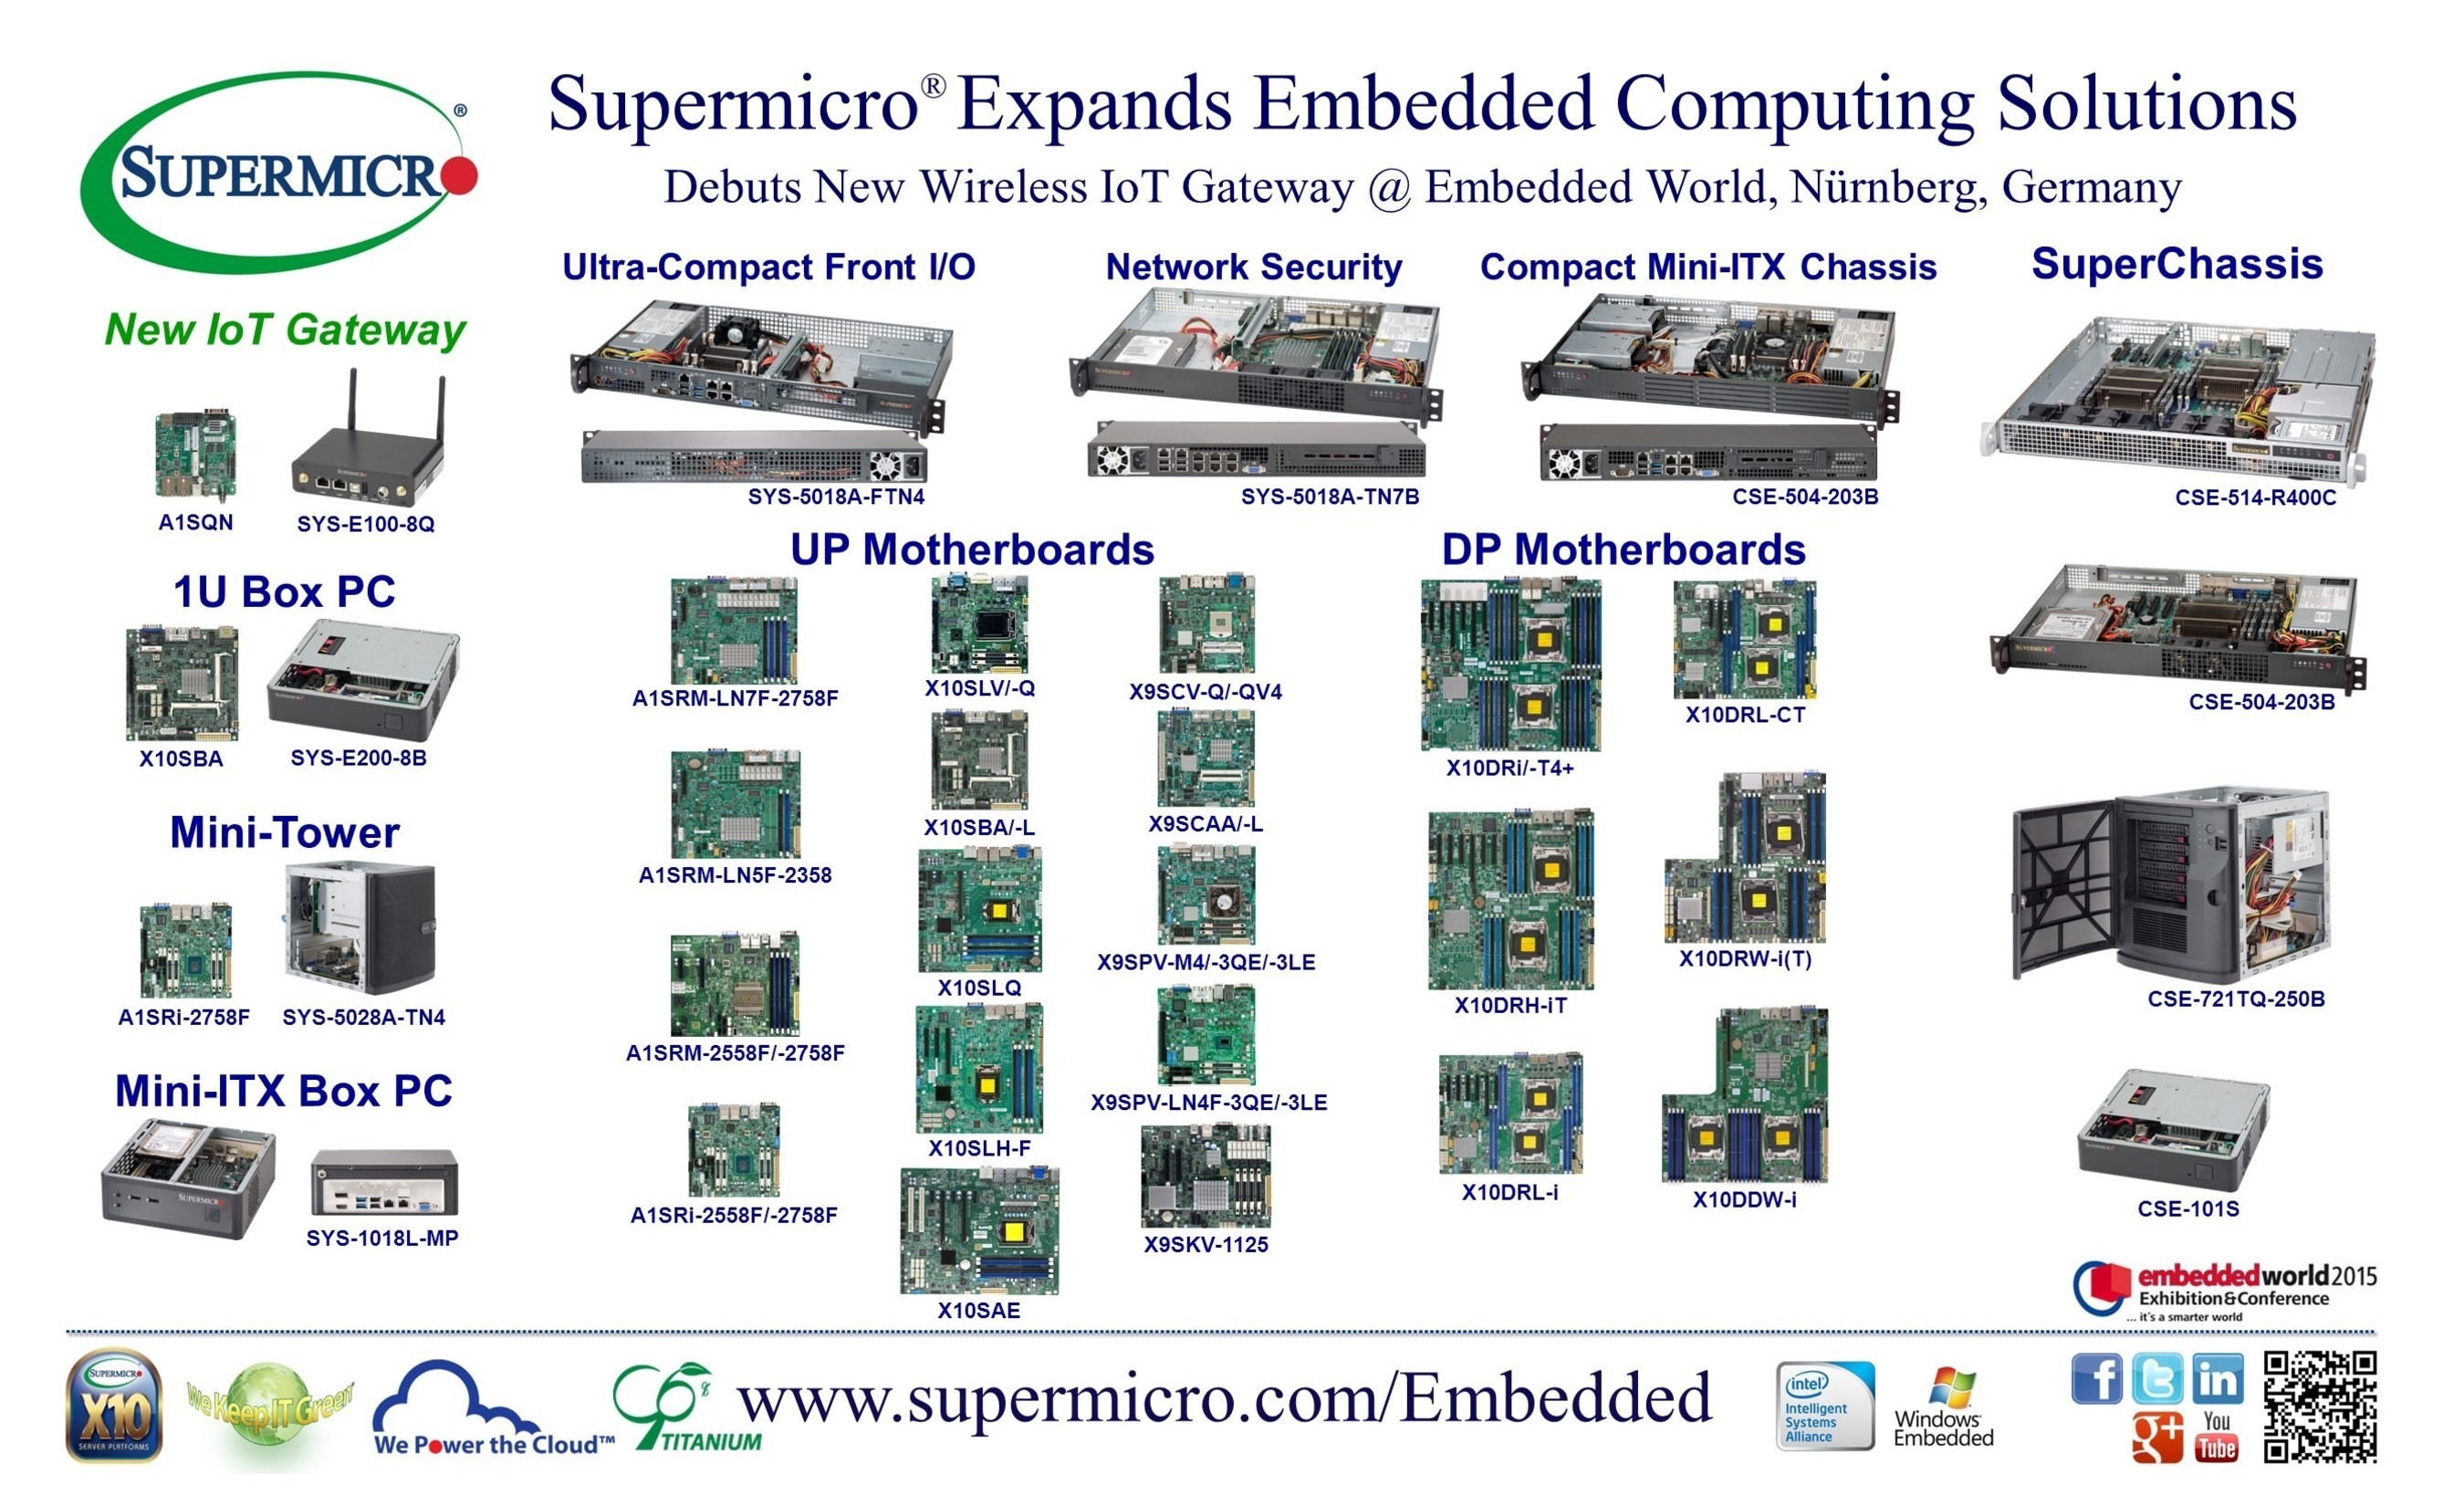 Supermicro' Expands Embedded Computing Solutions with New Wireless IoT Gateway at Embedded World, Nurnberg